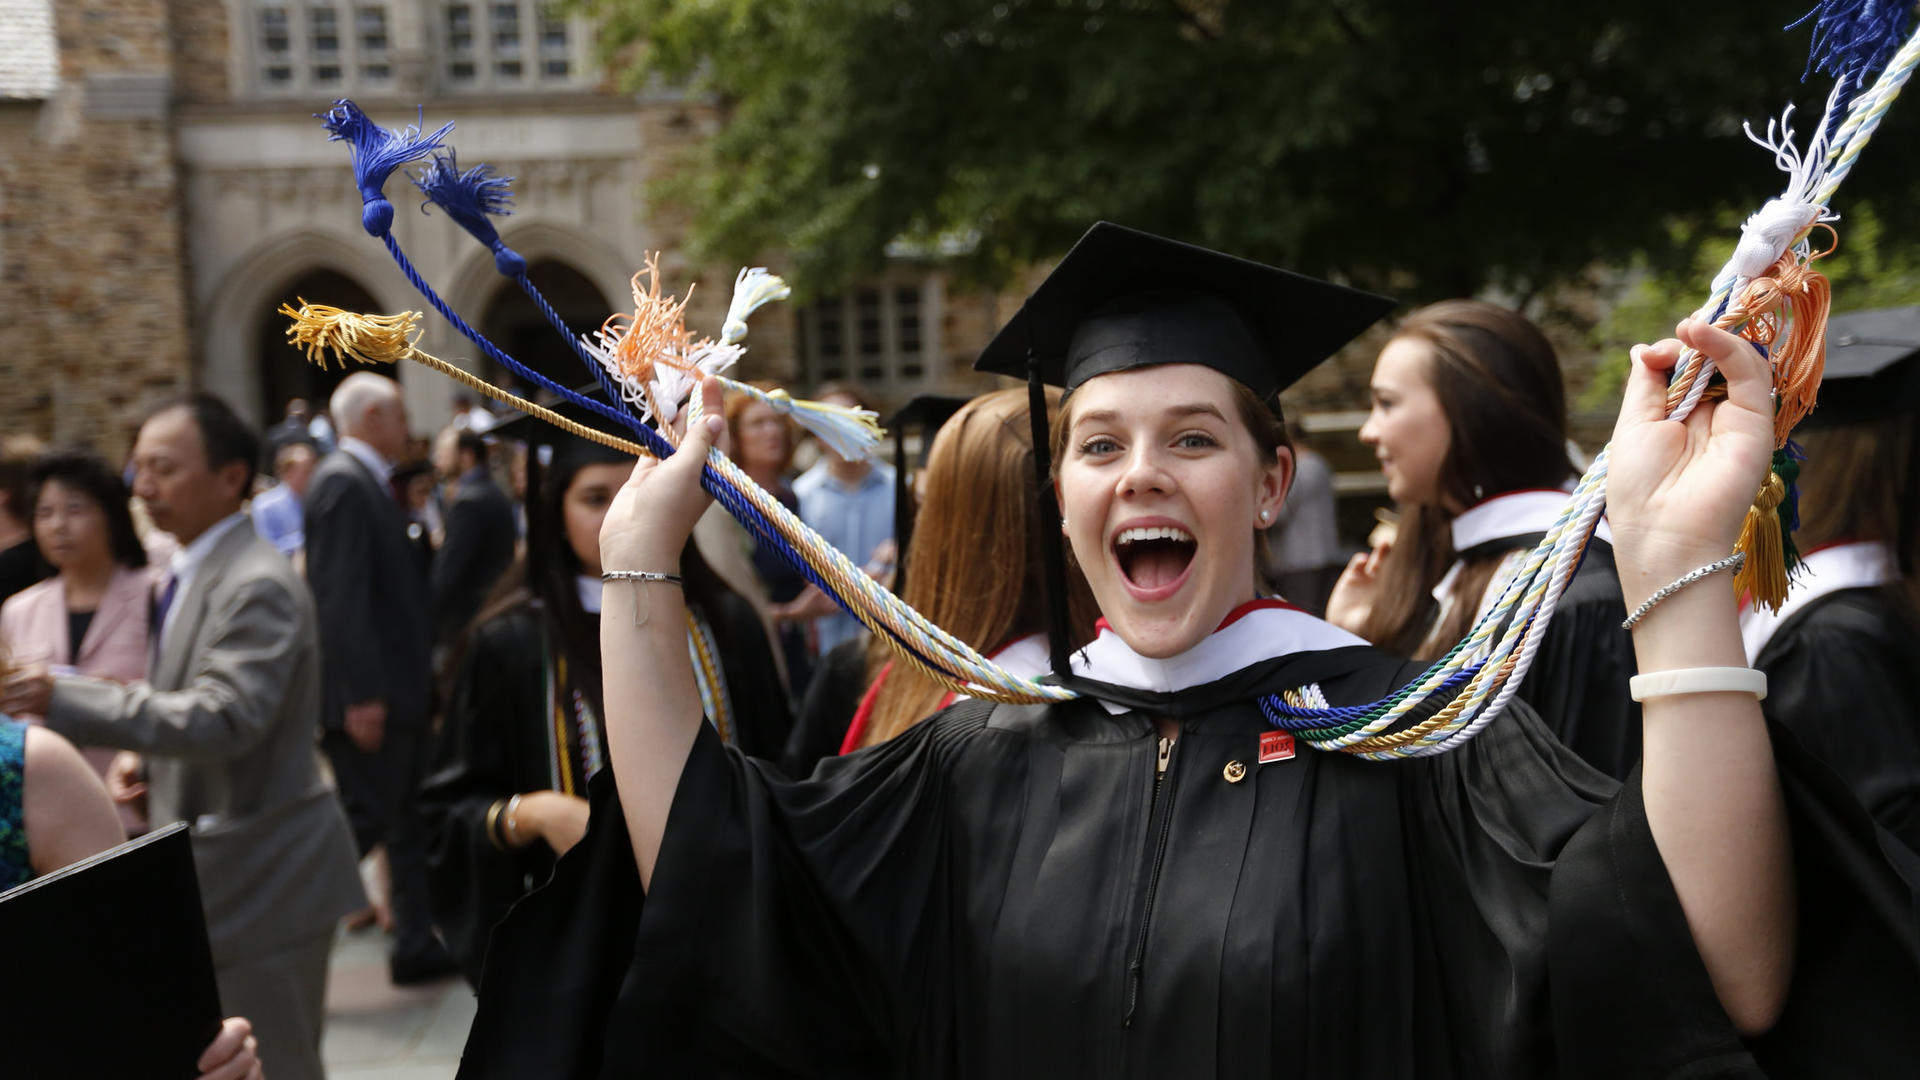 An excited student in graduation regalia smiles at the camera